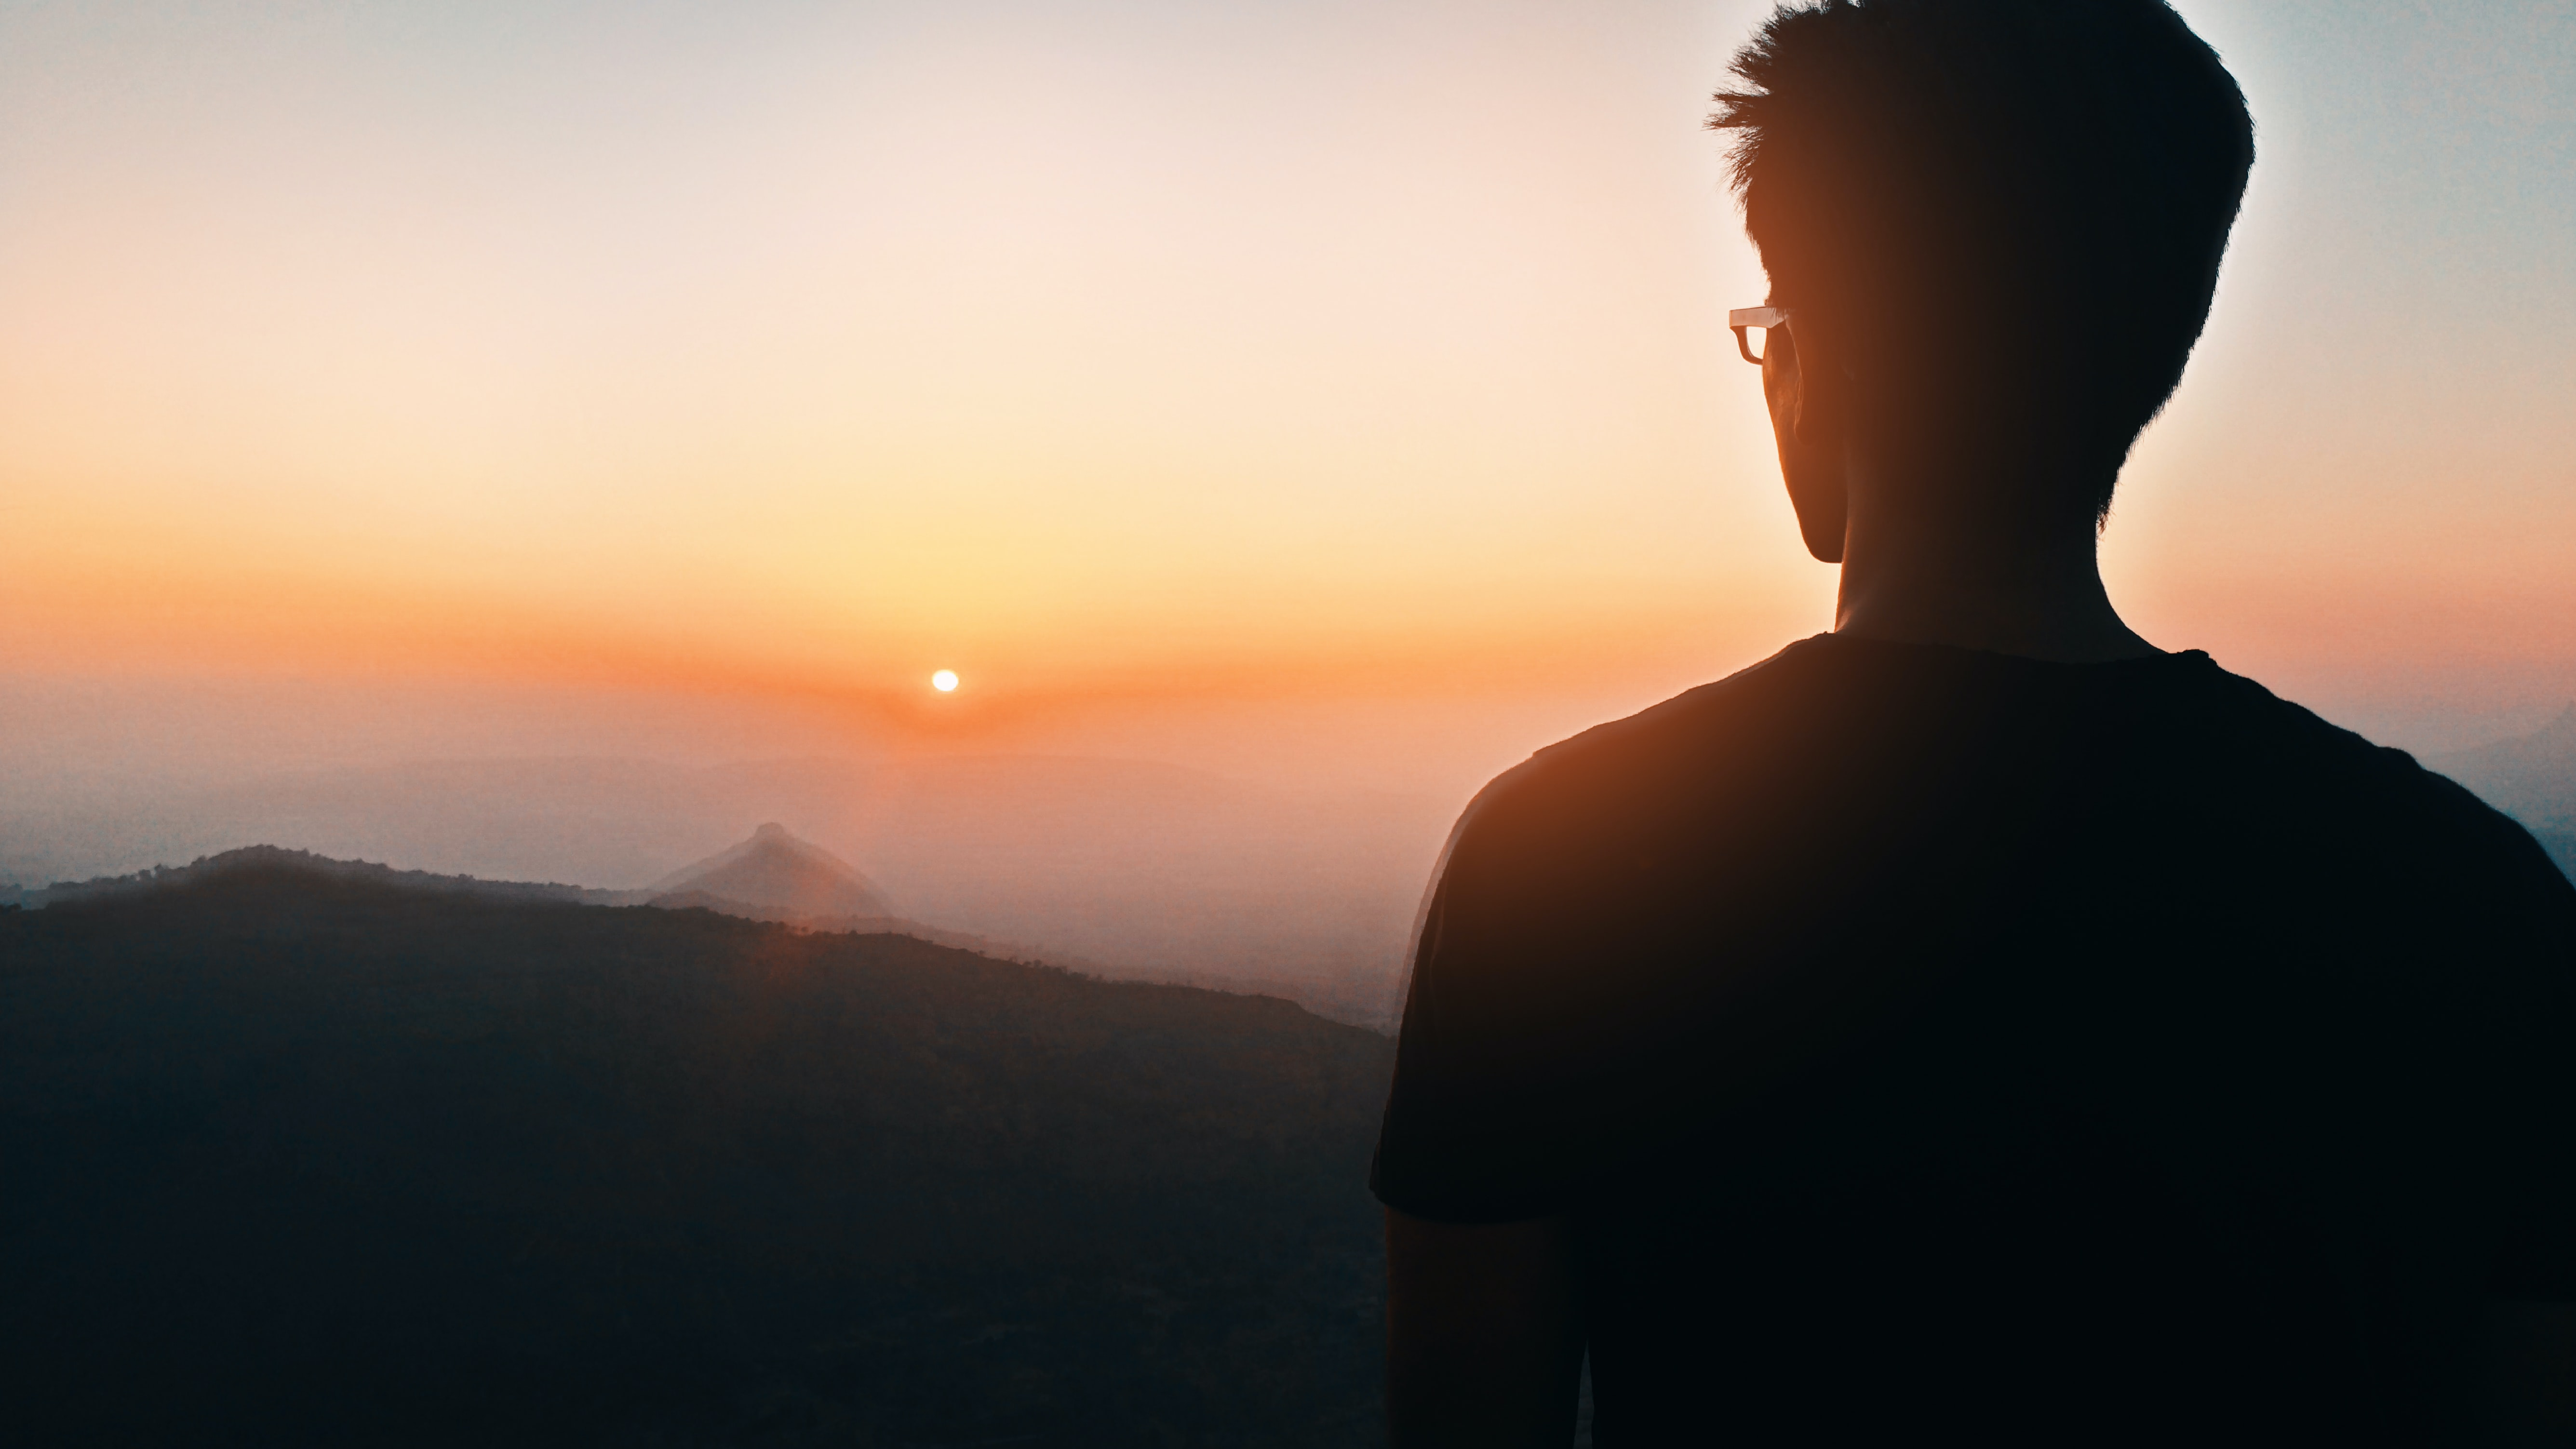 man's silhouette facing mountain at golden hour